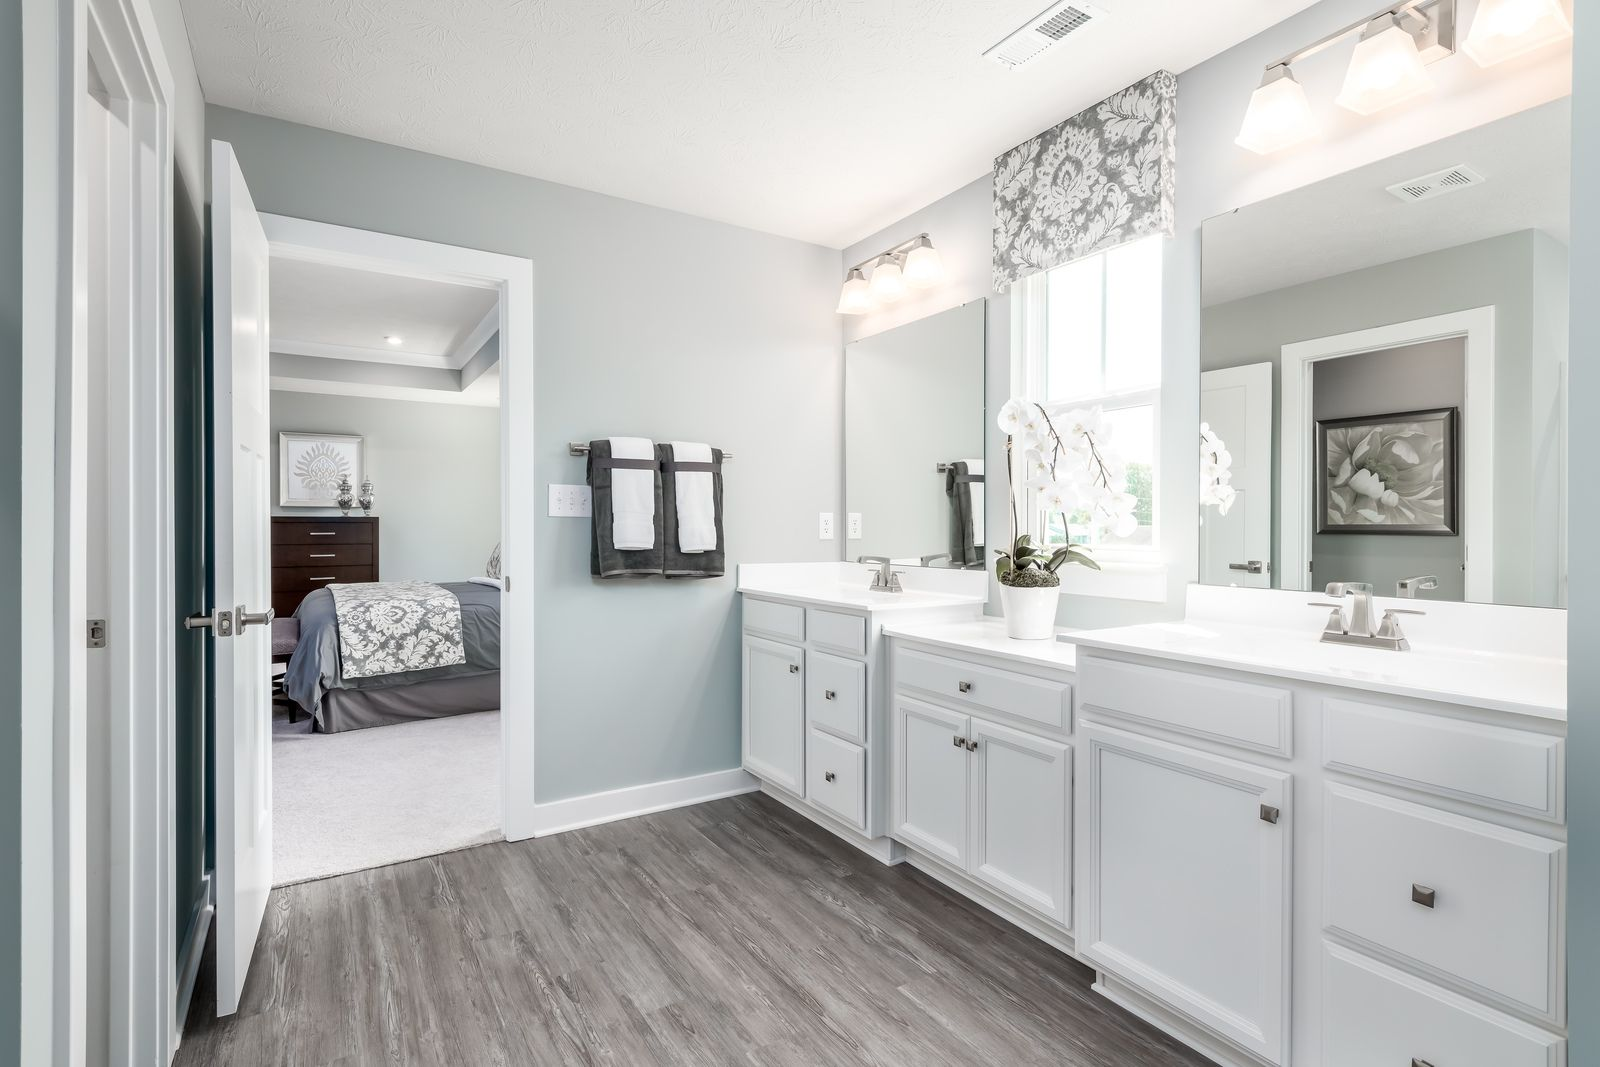 Bathroom featured in the Hudson By Ryan Homes in Washington, MD